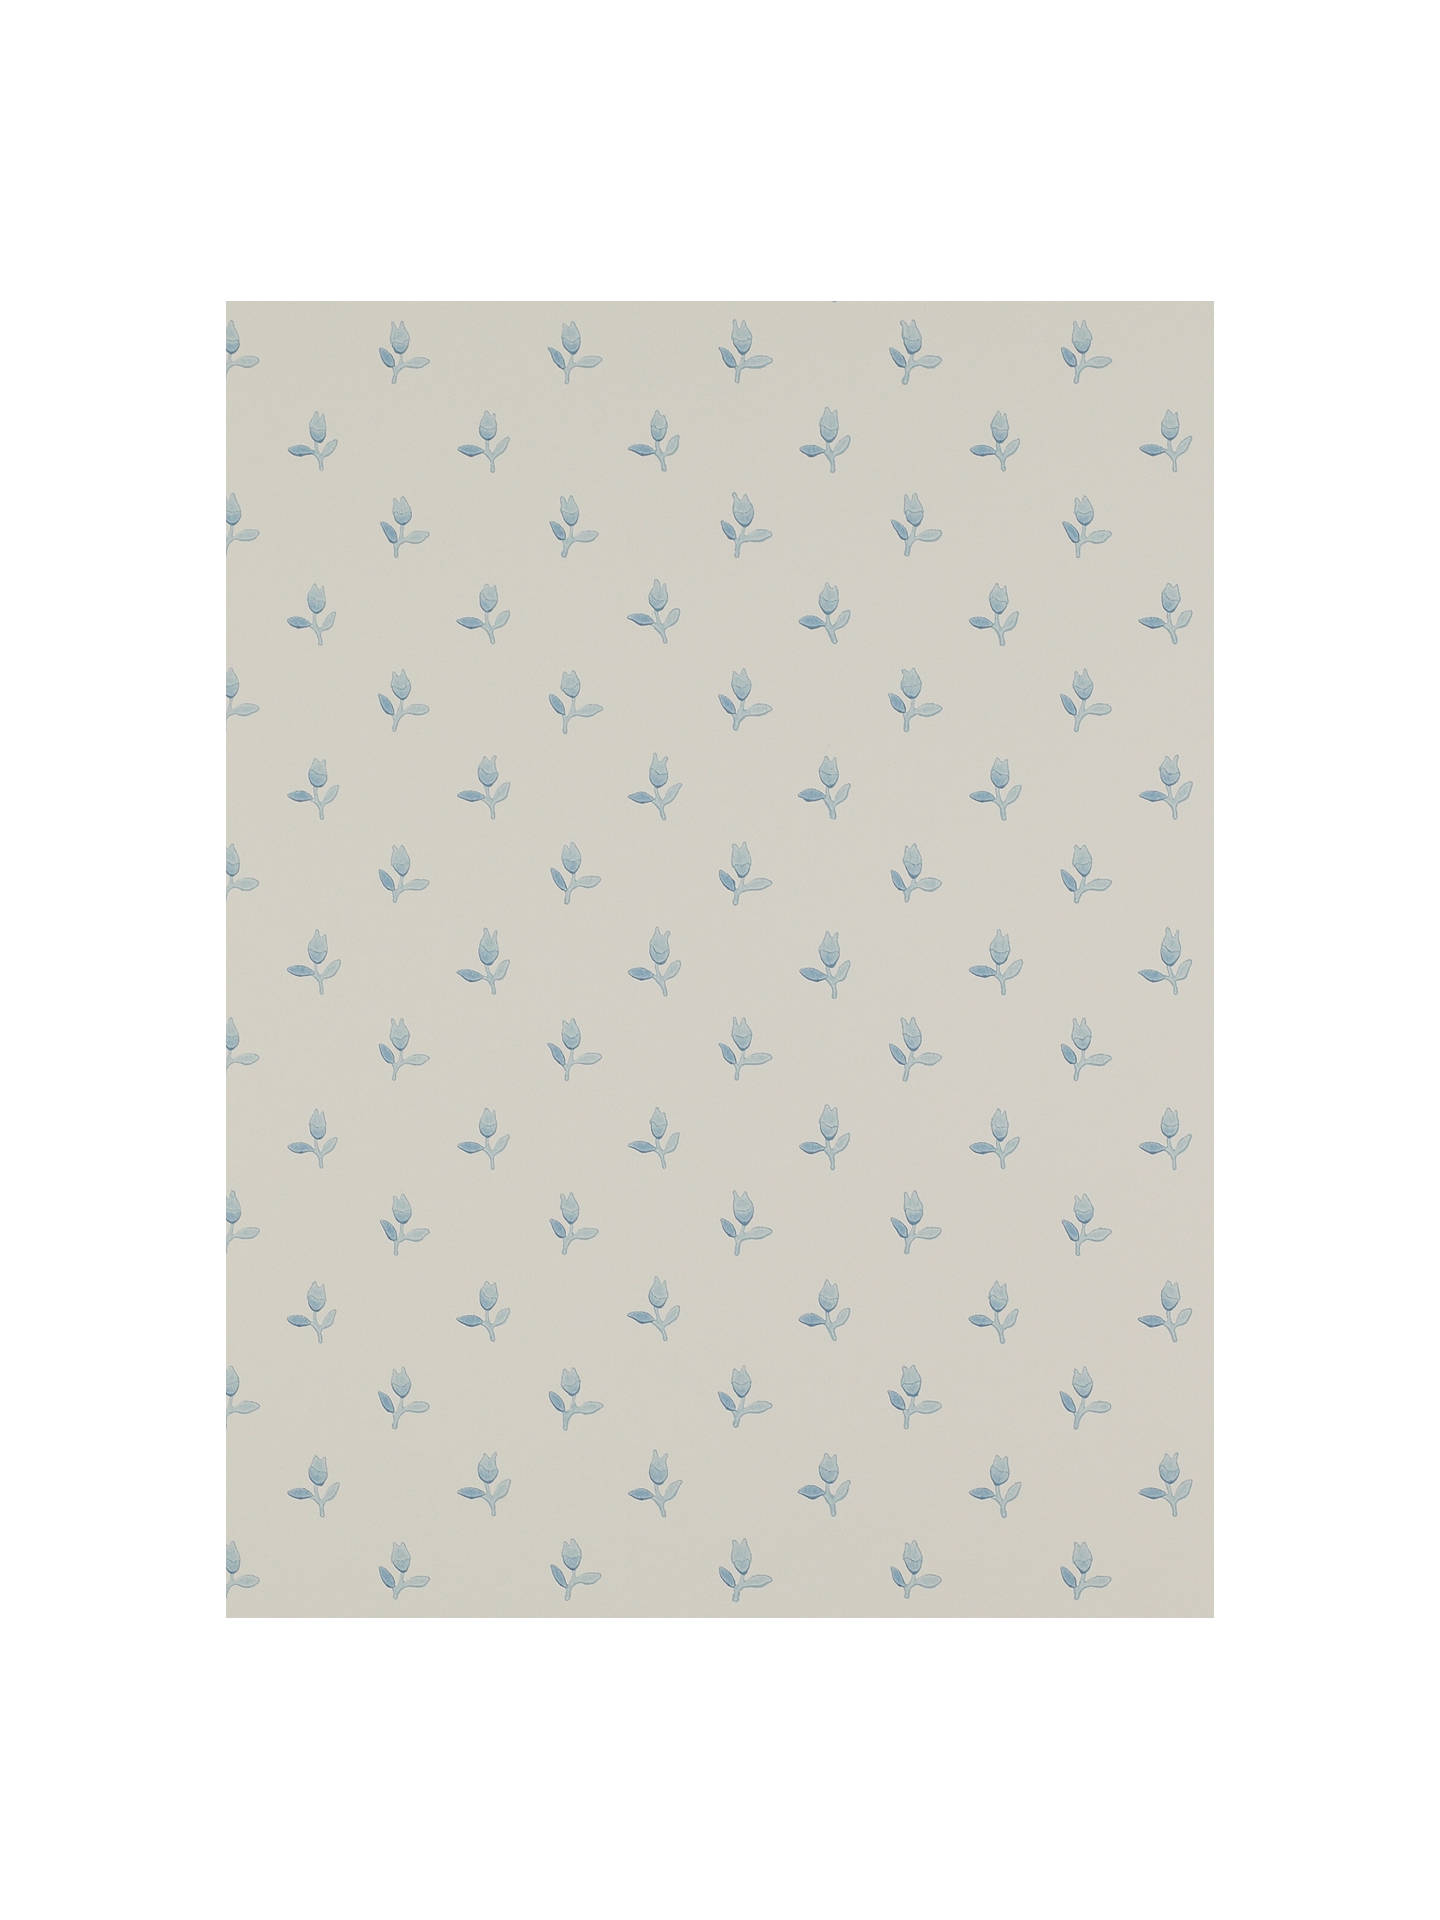 Buy Colefax and Fowler Sudbury Park Wallpaper, Blue, 07986/03 Online at johnlewis.com